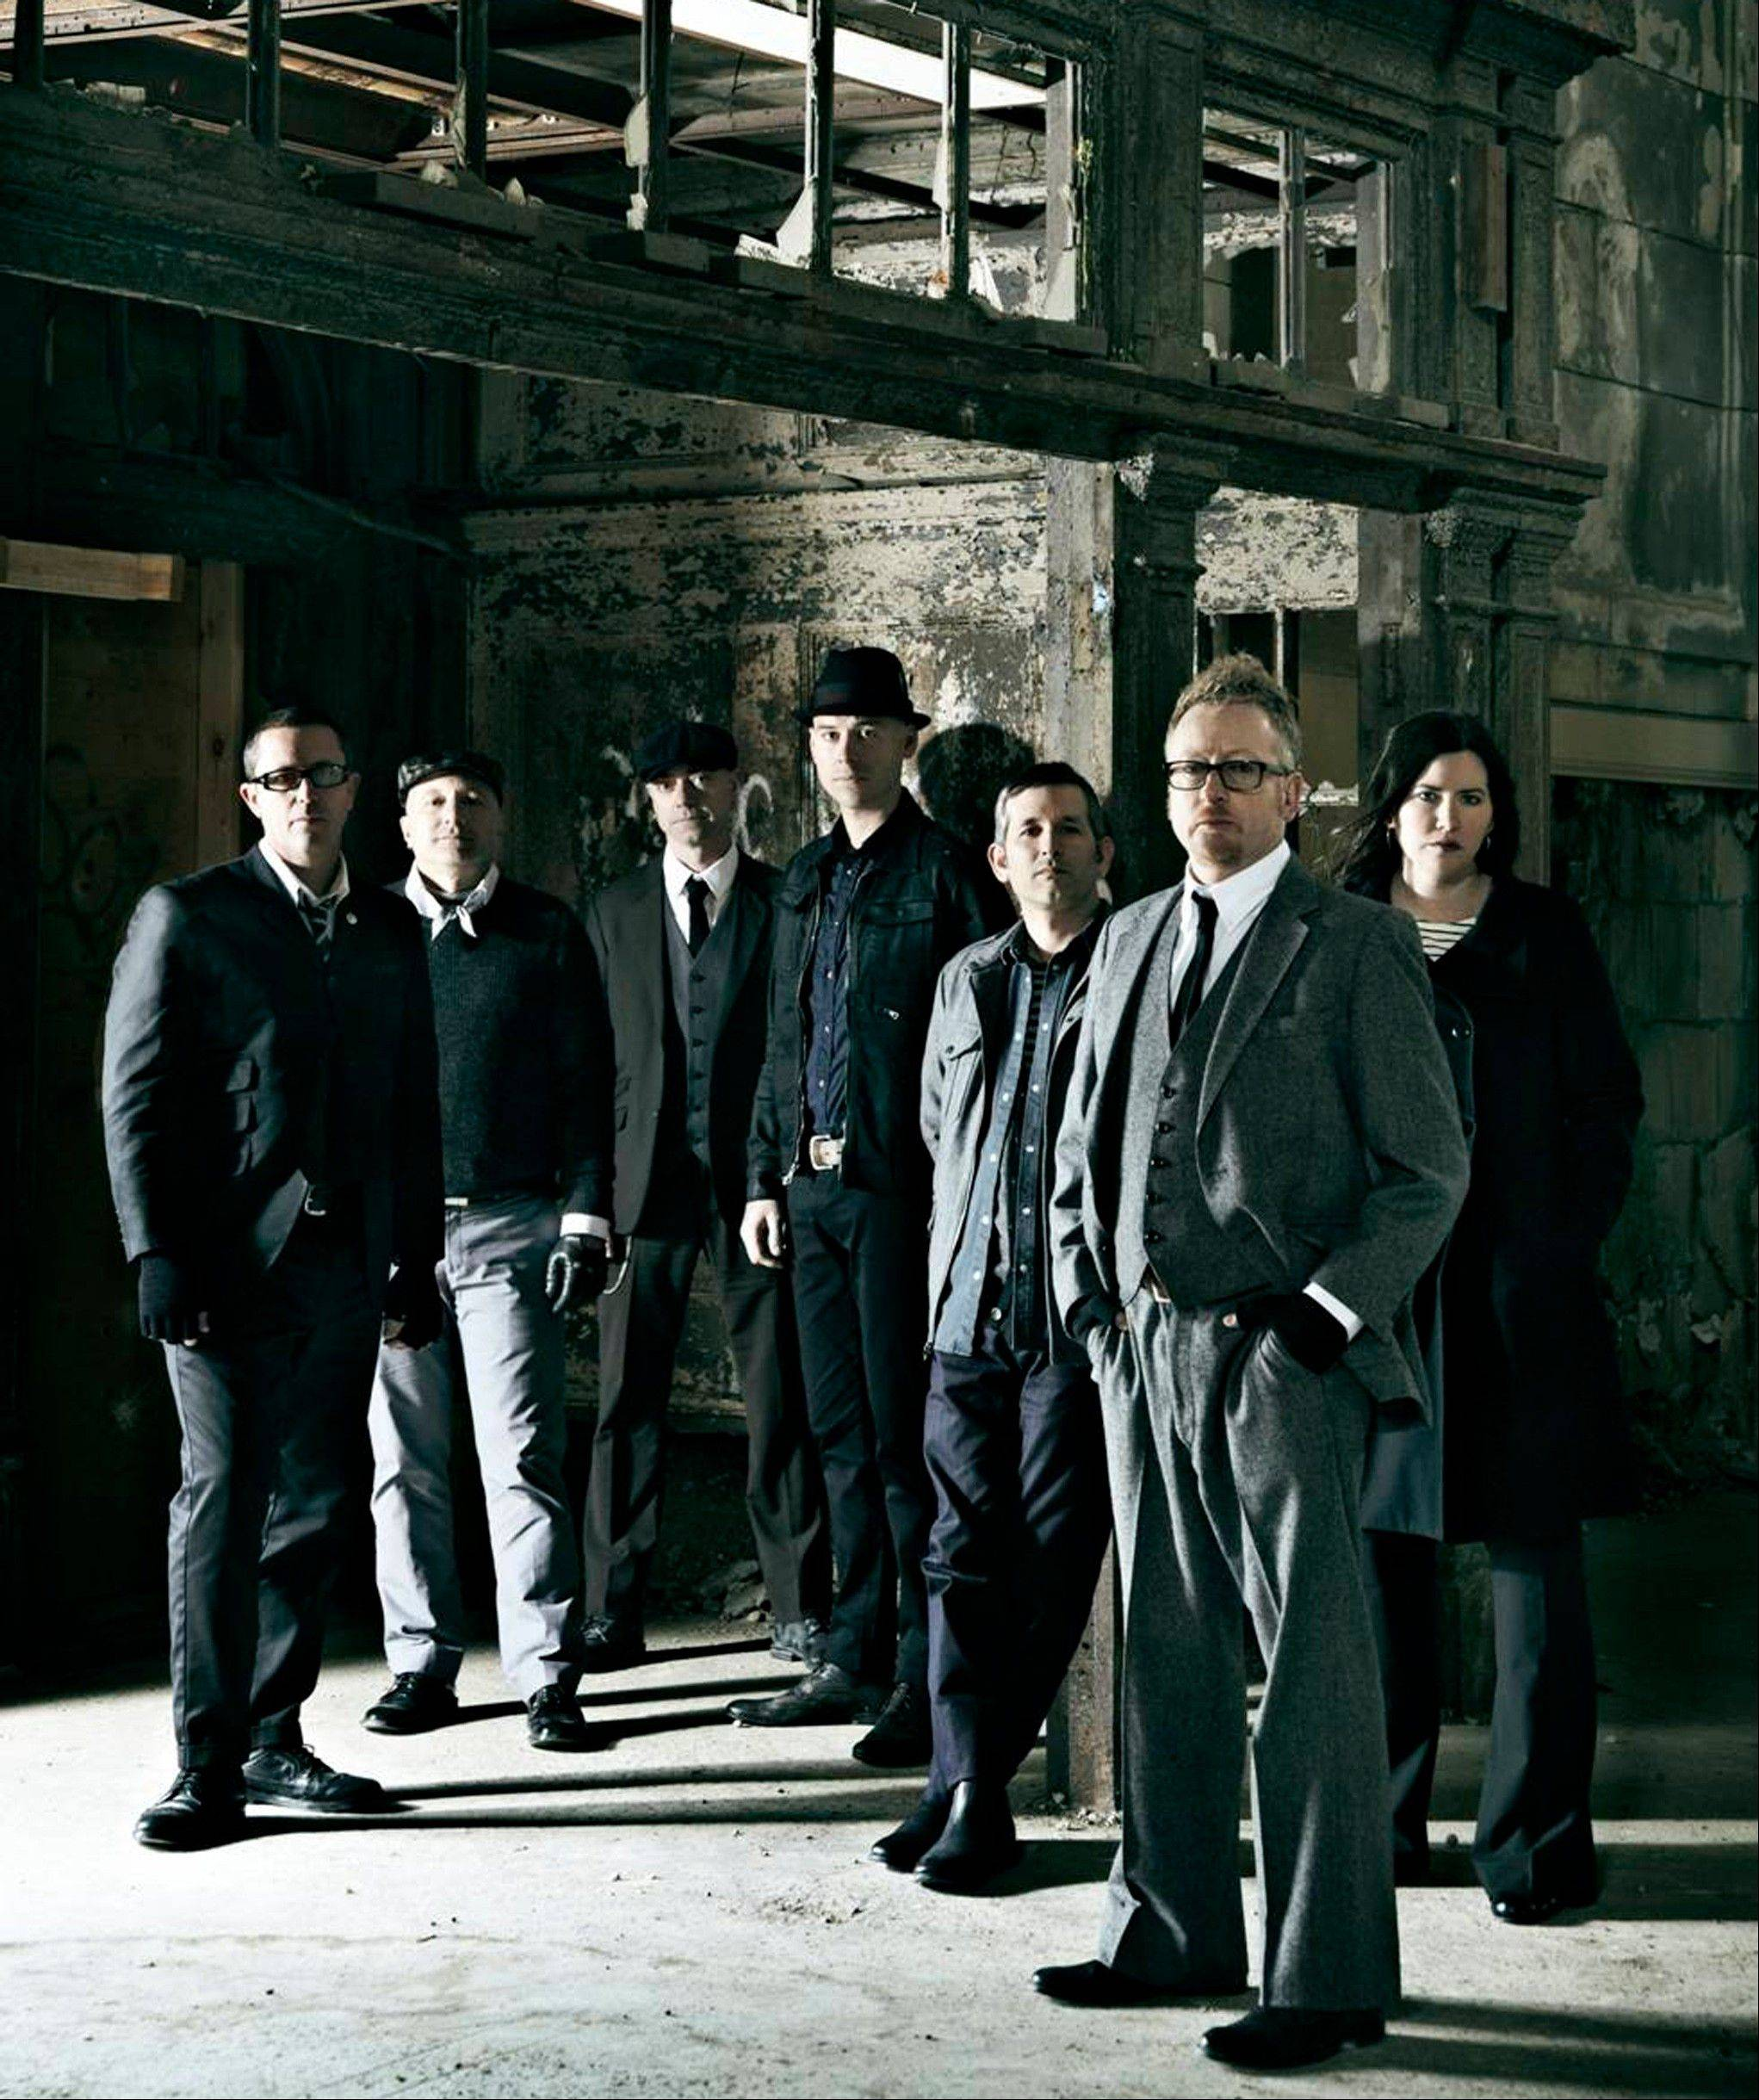 The economic downturn, and how it affected the city of Detroit, heavily influenced Flogging Molly's latest release.